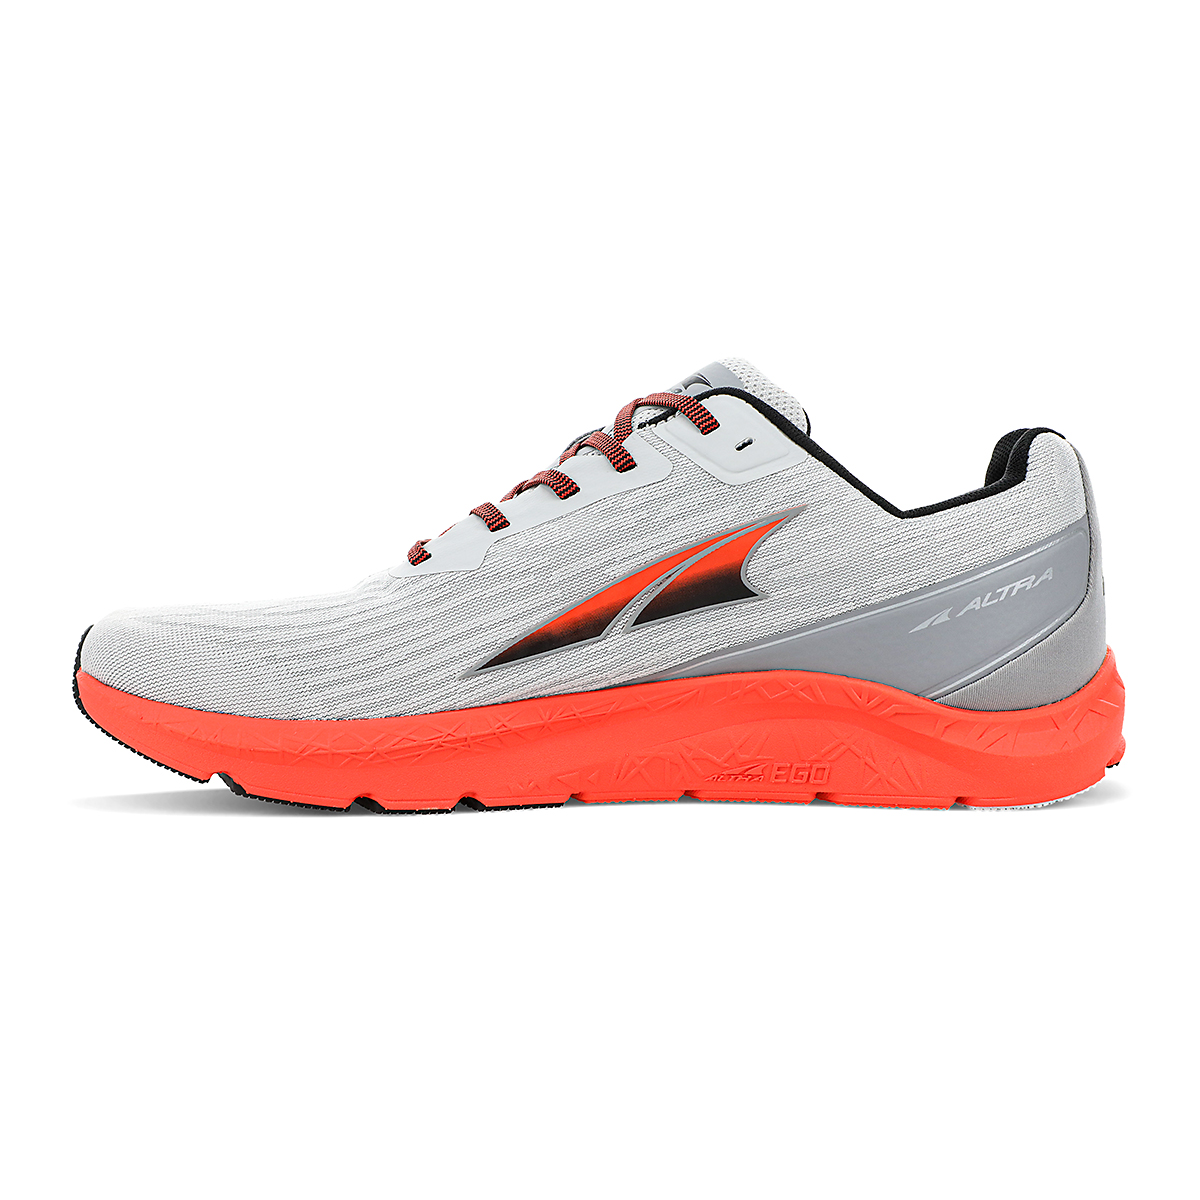 Men's Altra Rivera Running Shoe - Color: Gray/Orange - Size: 7 - Width: Regular, Gray/Orange, large, image 2